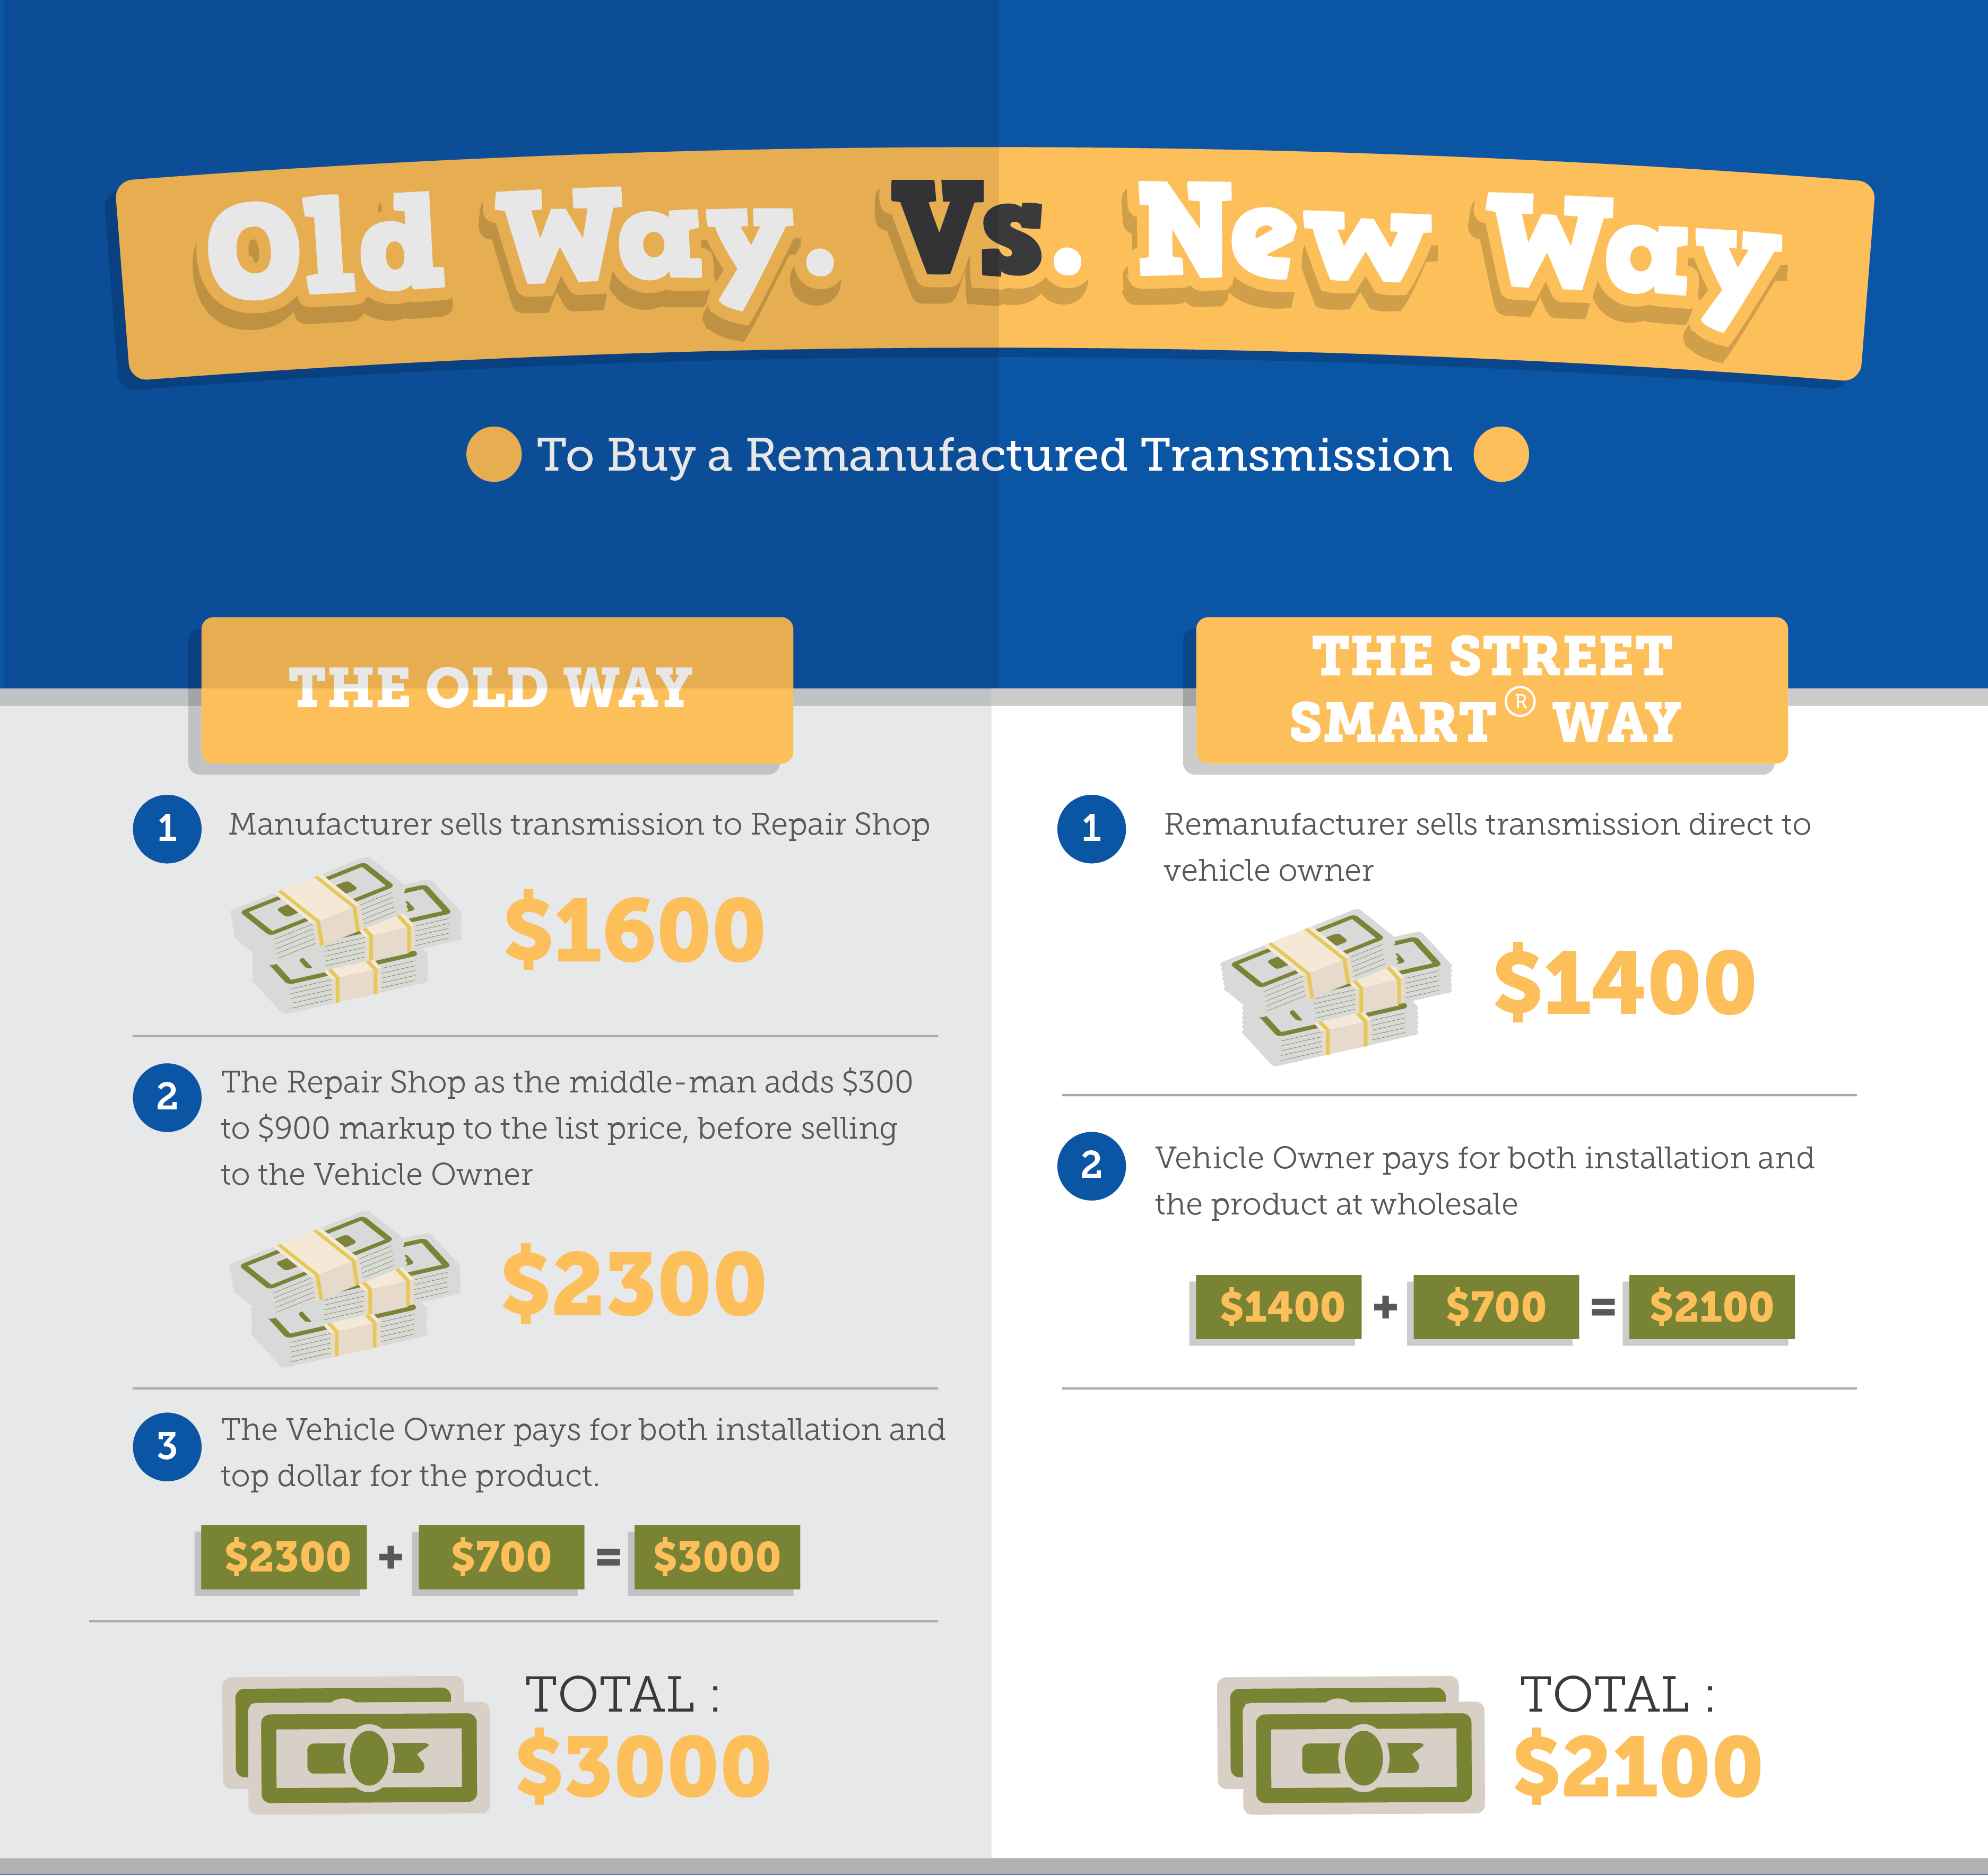 Old Way Vs New Way Remanufactured